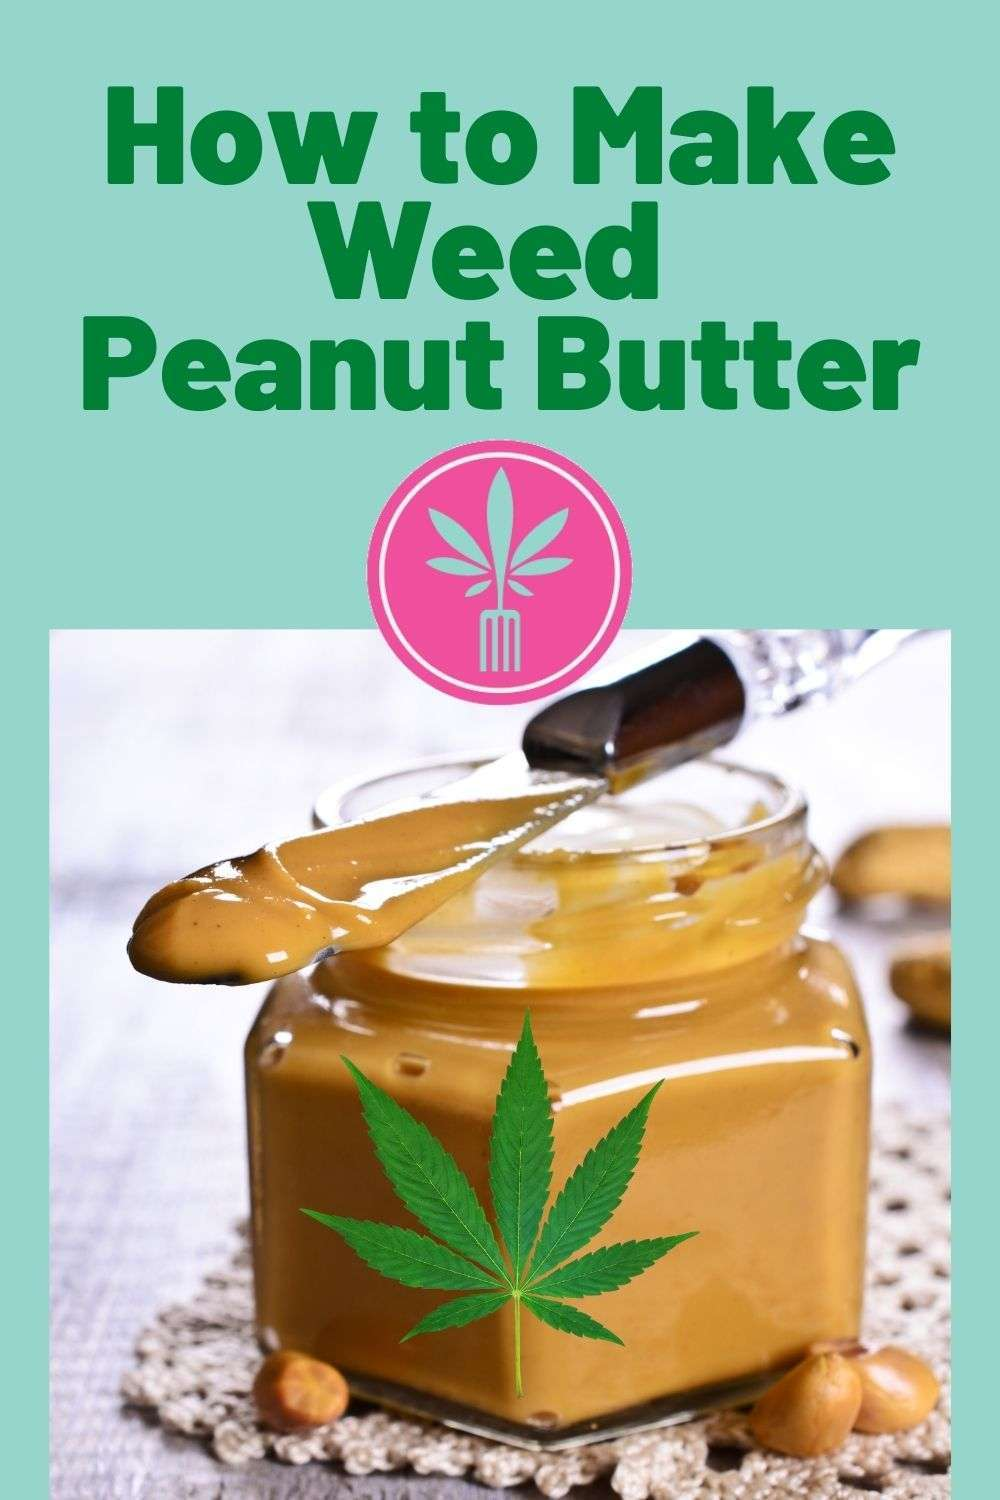 How to Make Weed Peanut Butter